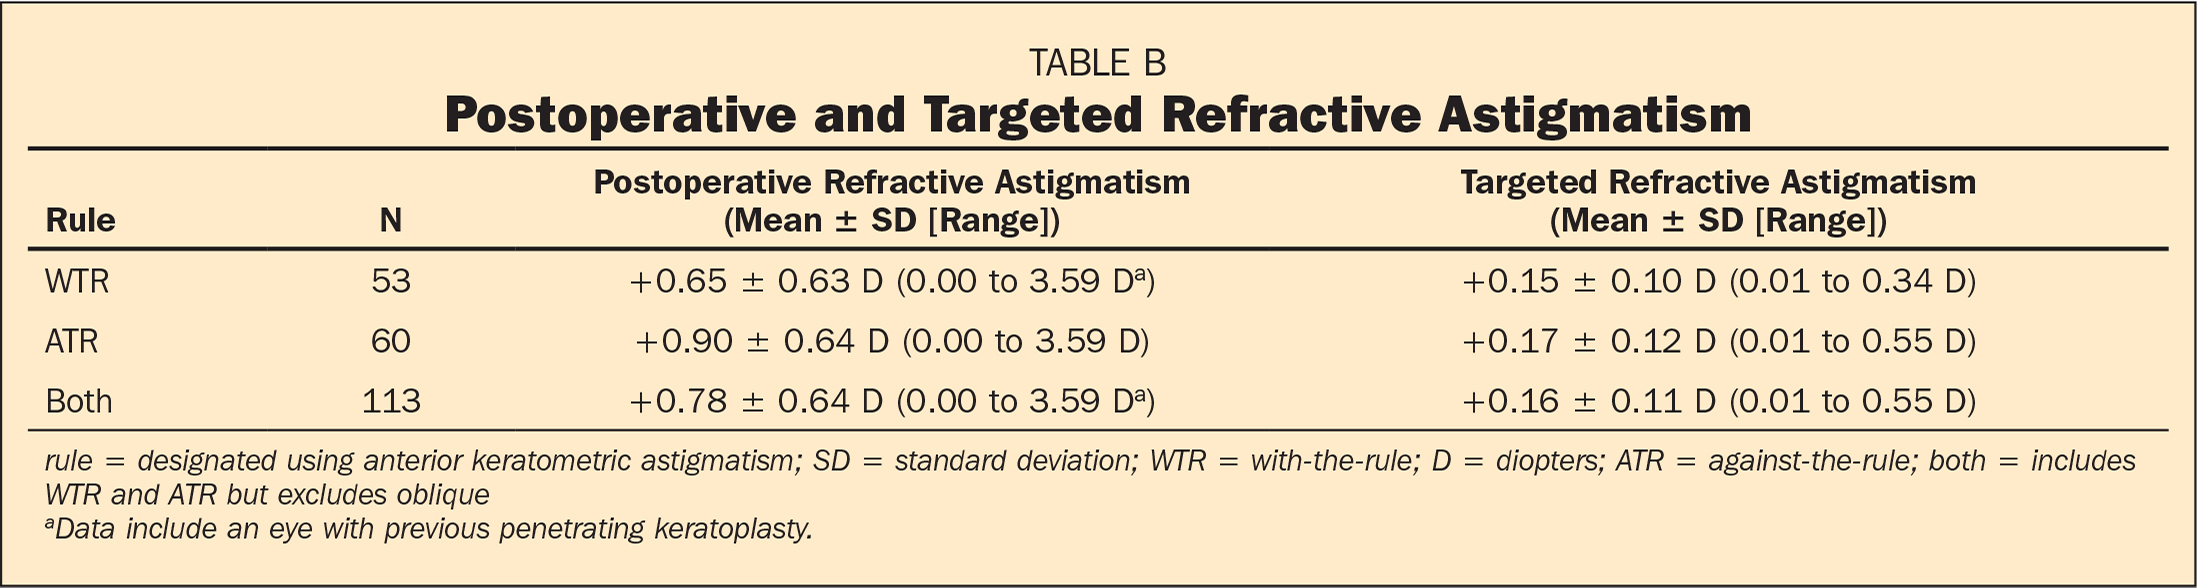 Postoperative and Targeted Refractive Astigmatism